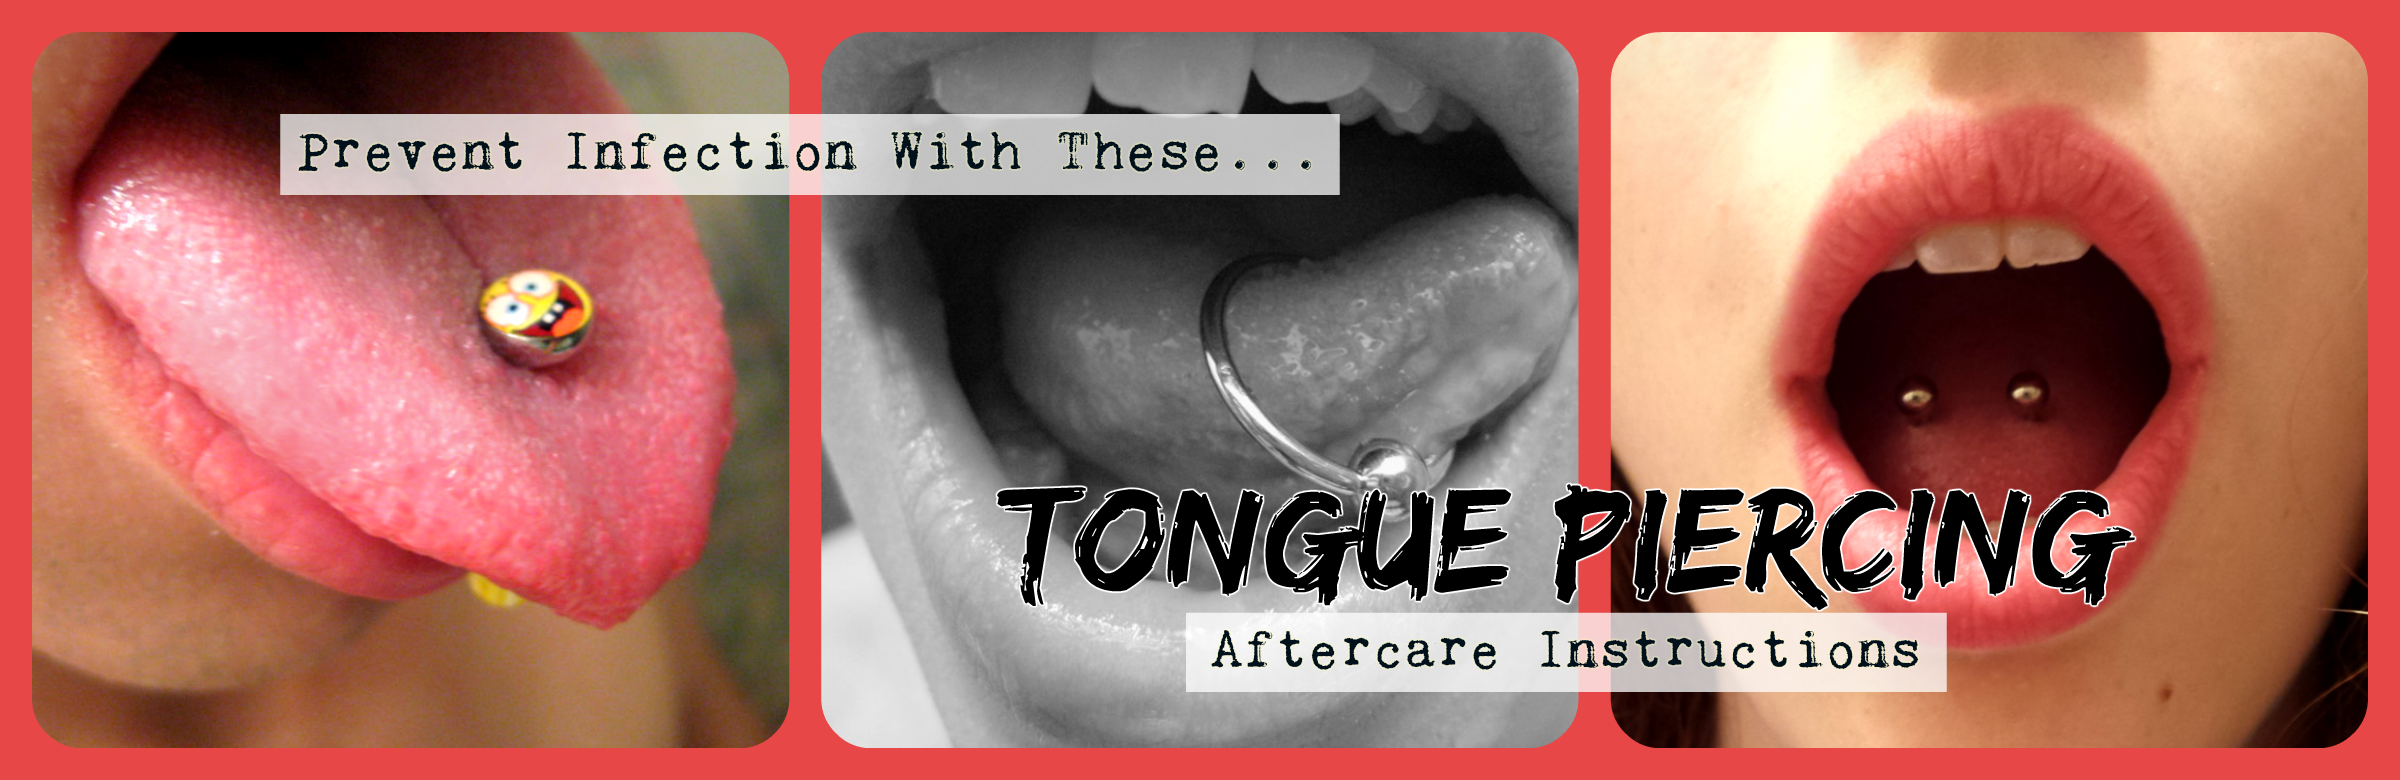 Tongue piercing aftercare instructions